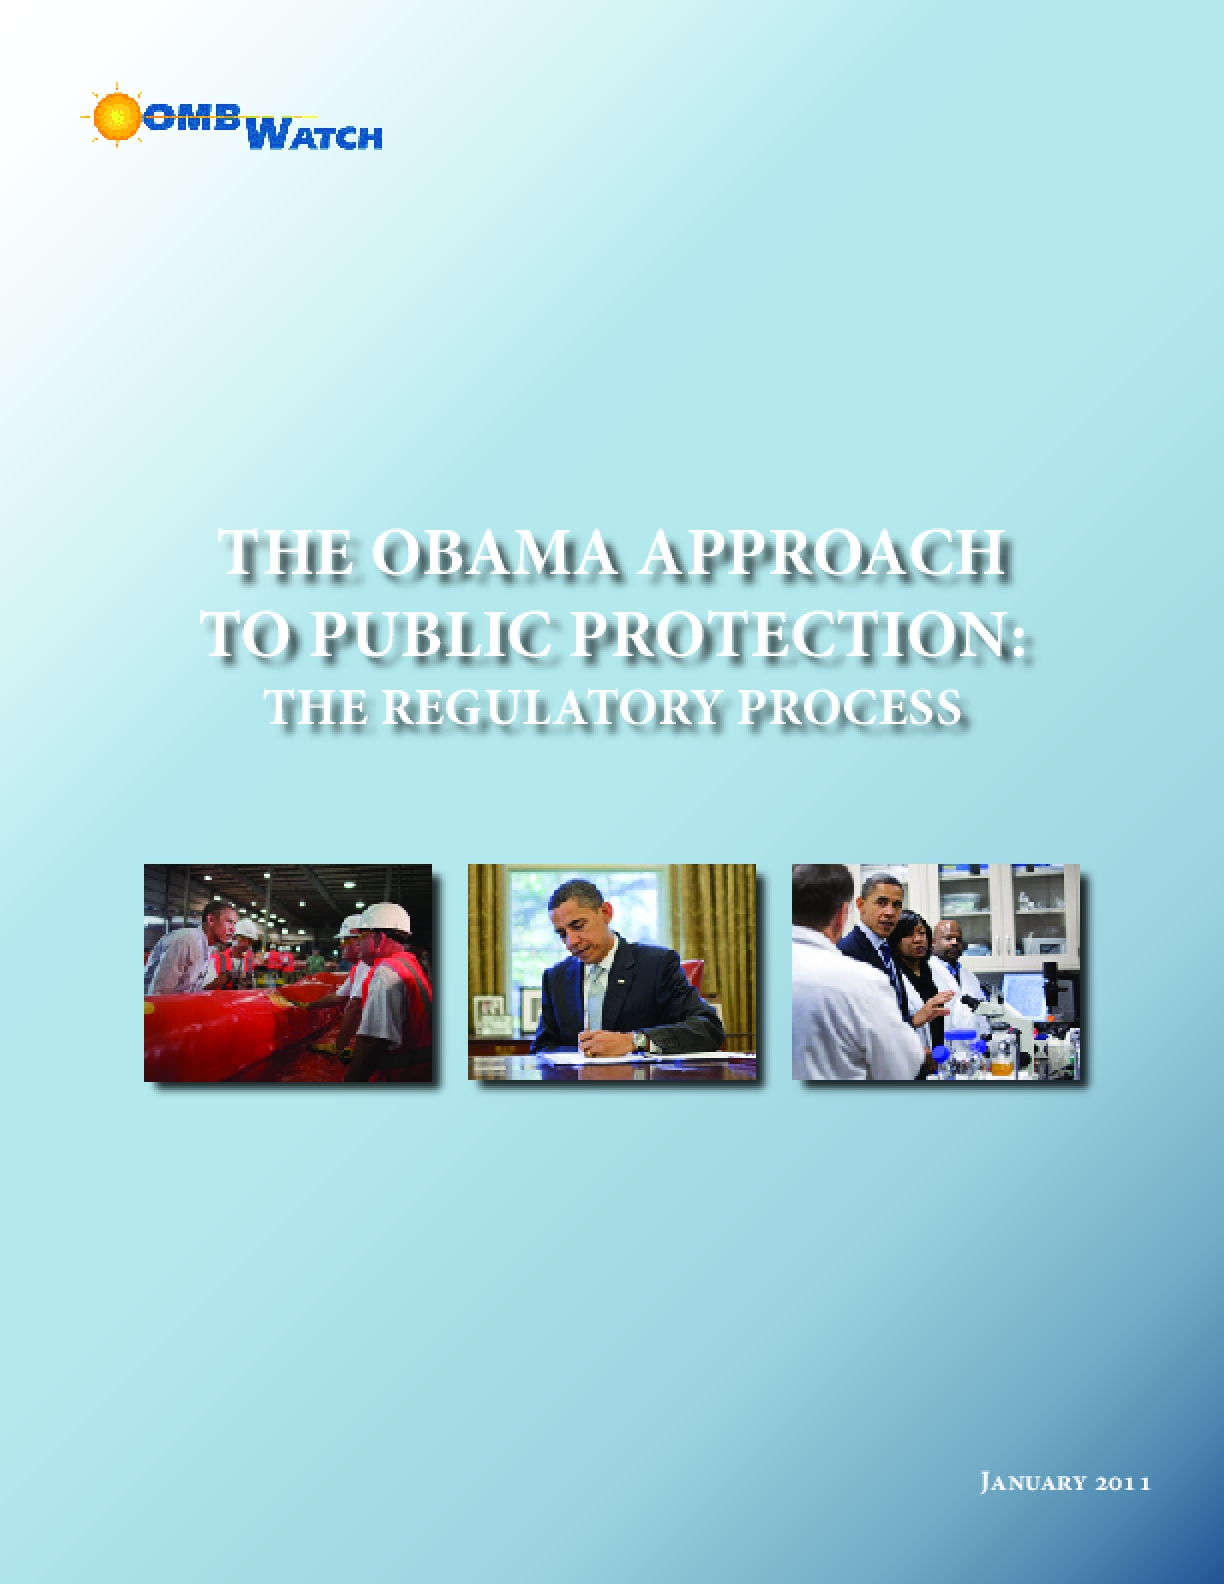 The Obama Approach to Public Protection: The Regulatory Process